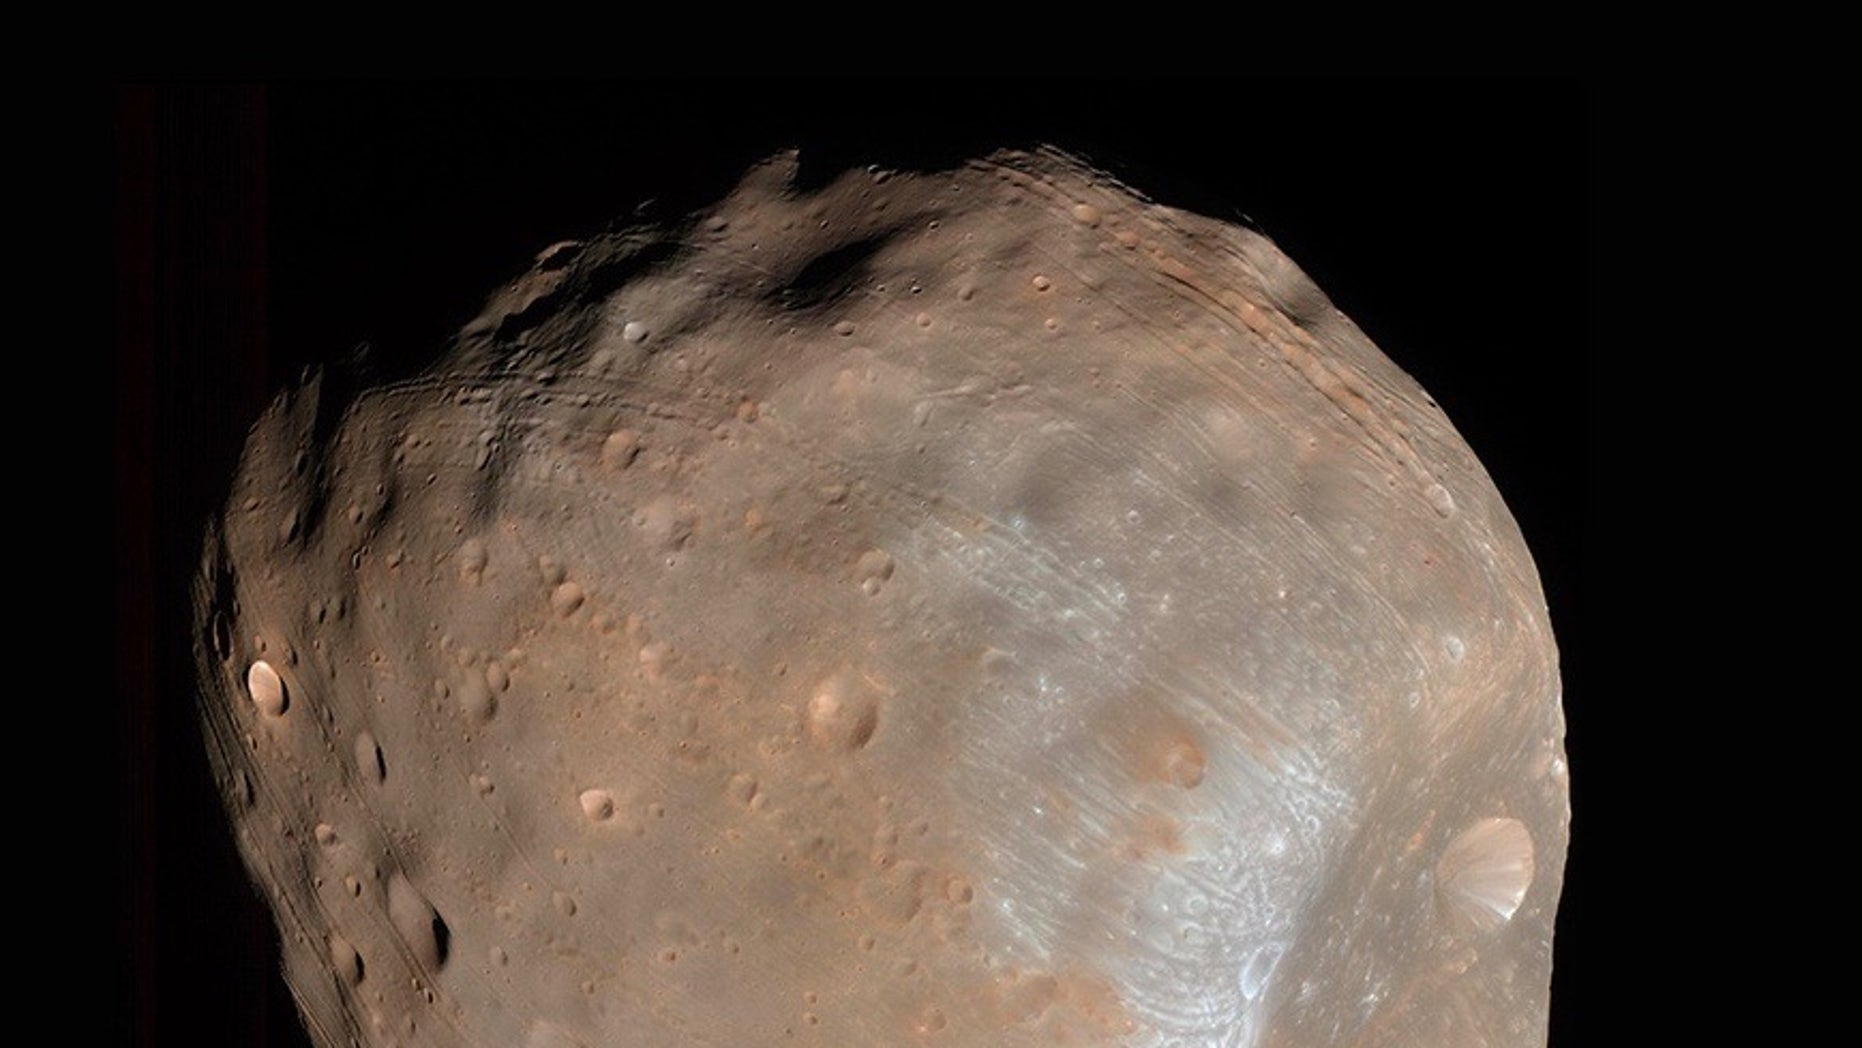 The strange grooves on the surface of the tiny Mars moon Phobos (seen here by NASA's Mars Reconnaissance Orbiter) were made by rolling boulders knocked loose by a giant impact, a new study suggests.